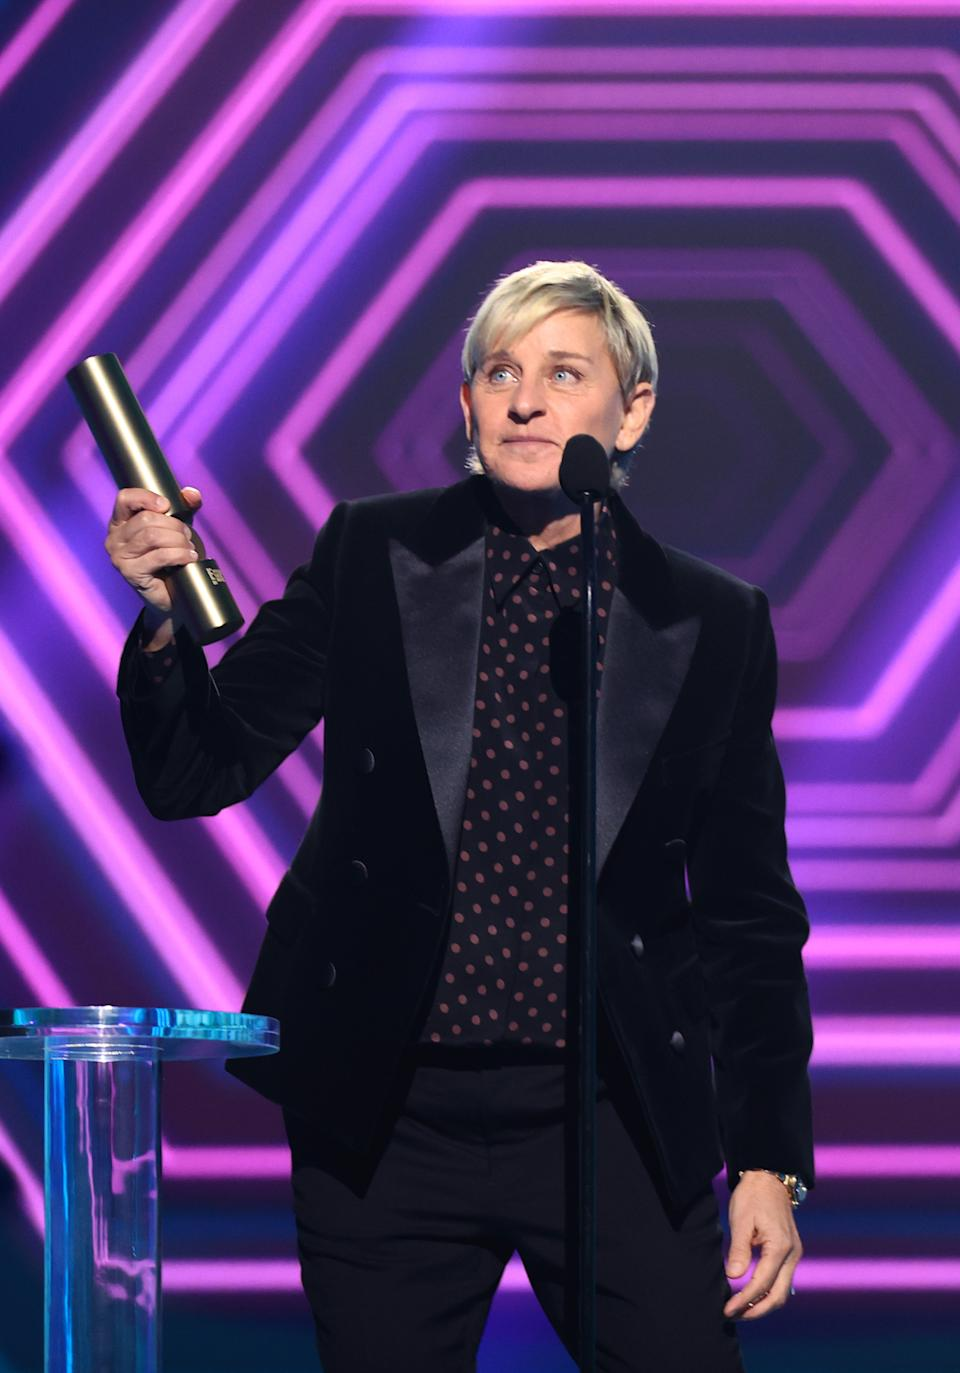 Ellen DeGeneres accepts the award for The Daytime Talk Show of 2020 onstage for the 2020 E! People's Choice Awards. (Photo by Christopher Polk/E! Entertainment/NBCU Photo Bank via Getty Images)